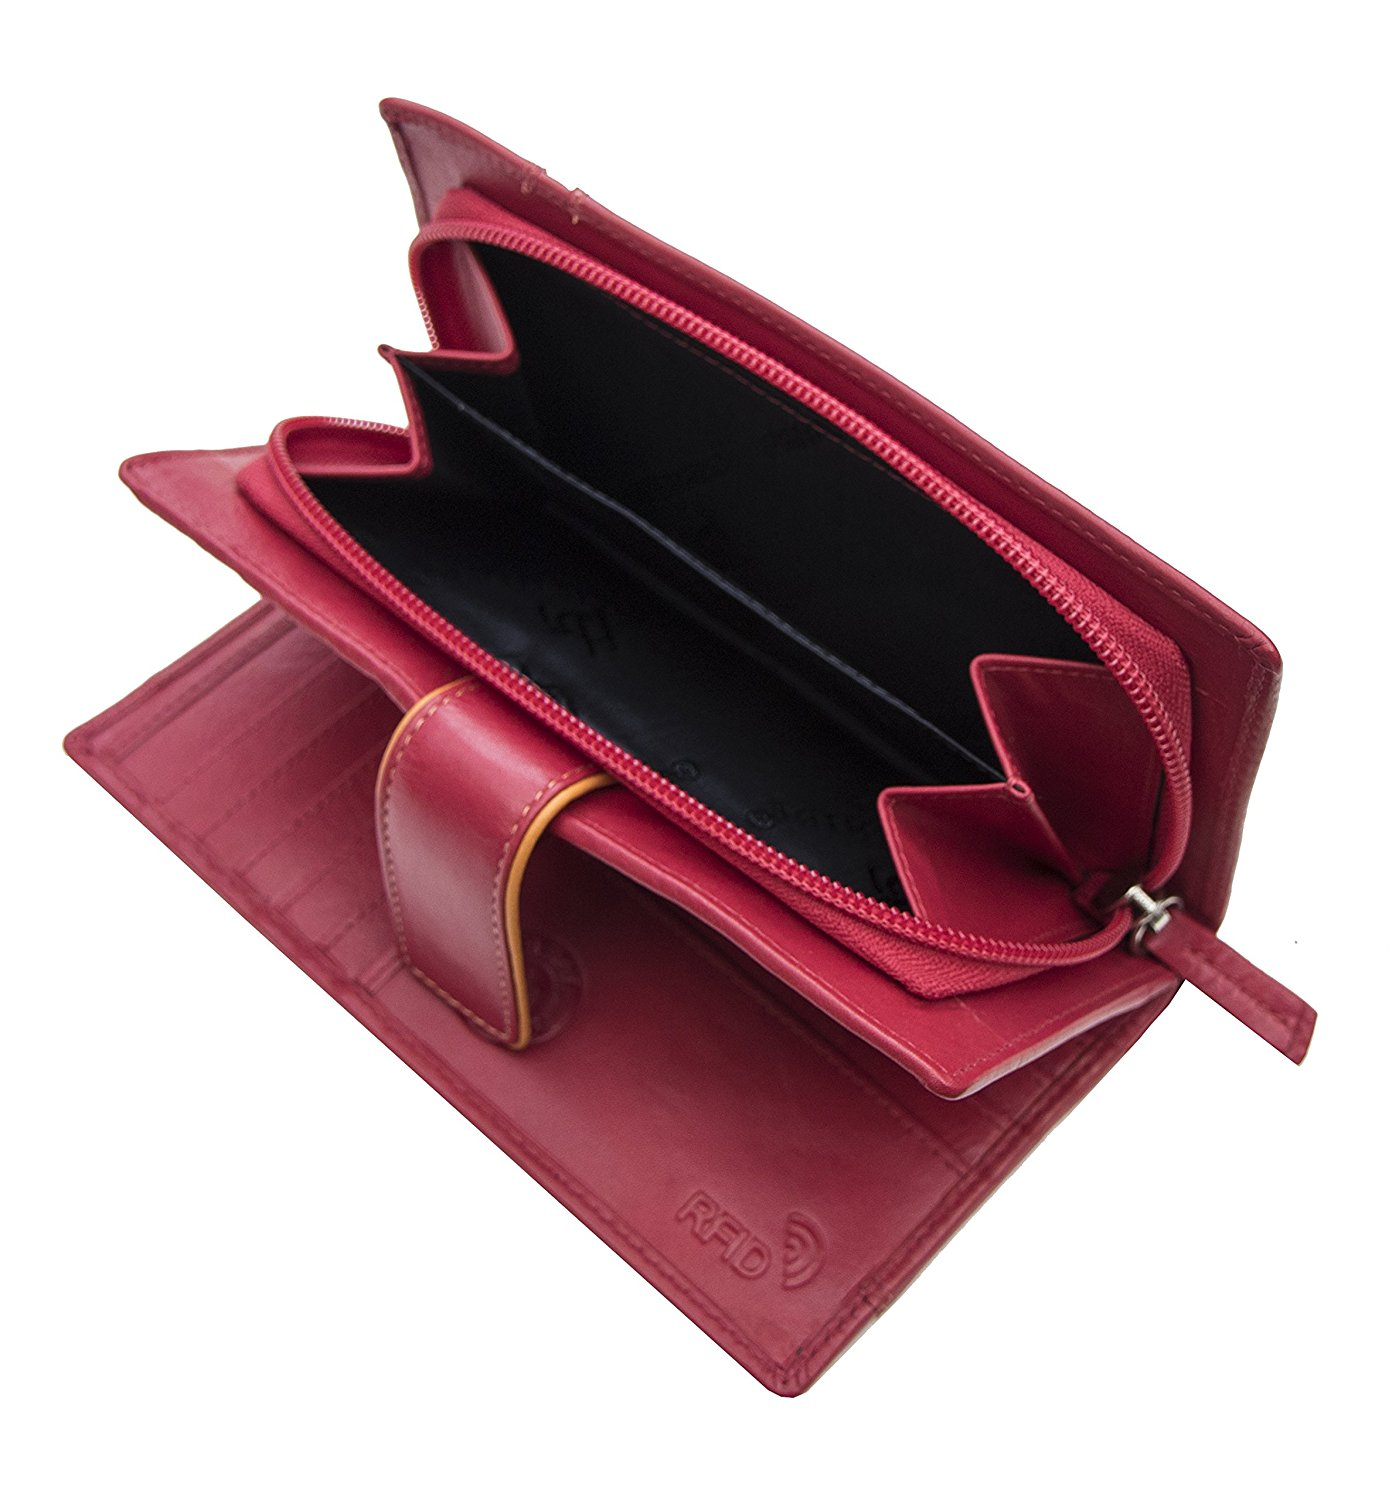 Femmes-Extra-Large-en-Cuir-Veritable-RFID-Bloquant-Organisateur-Clutch-Wallet-purse miniature 24